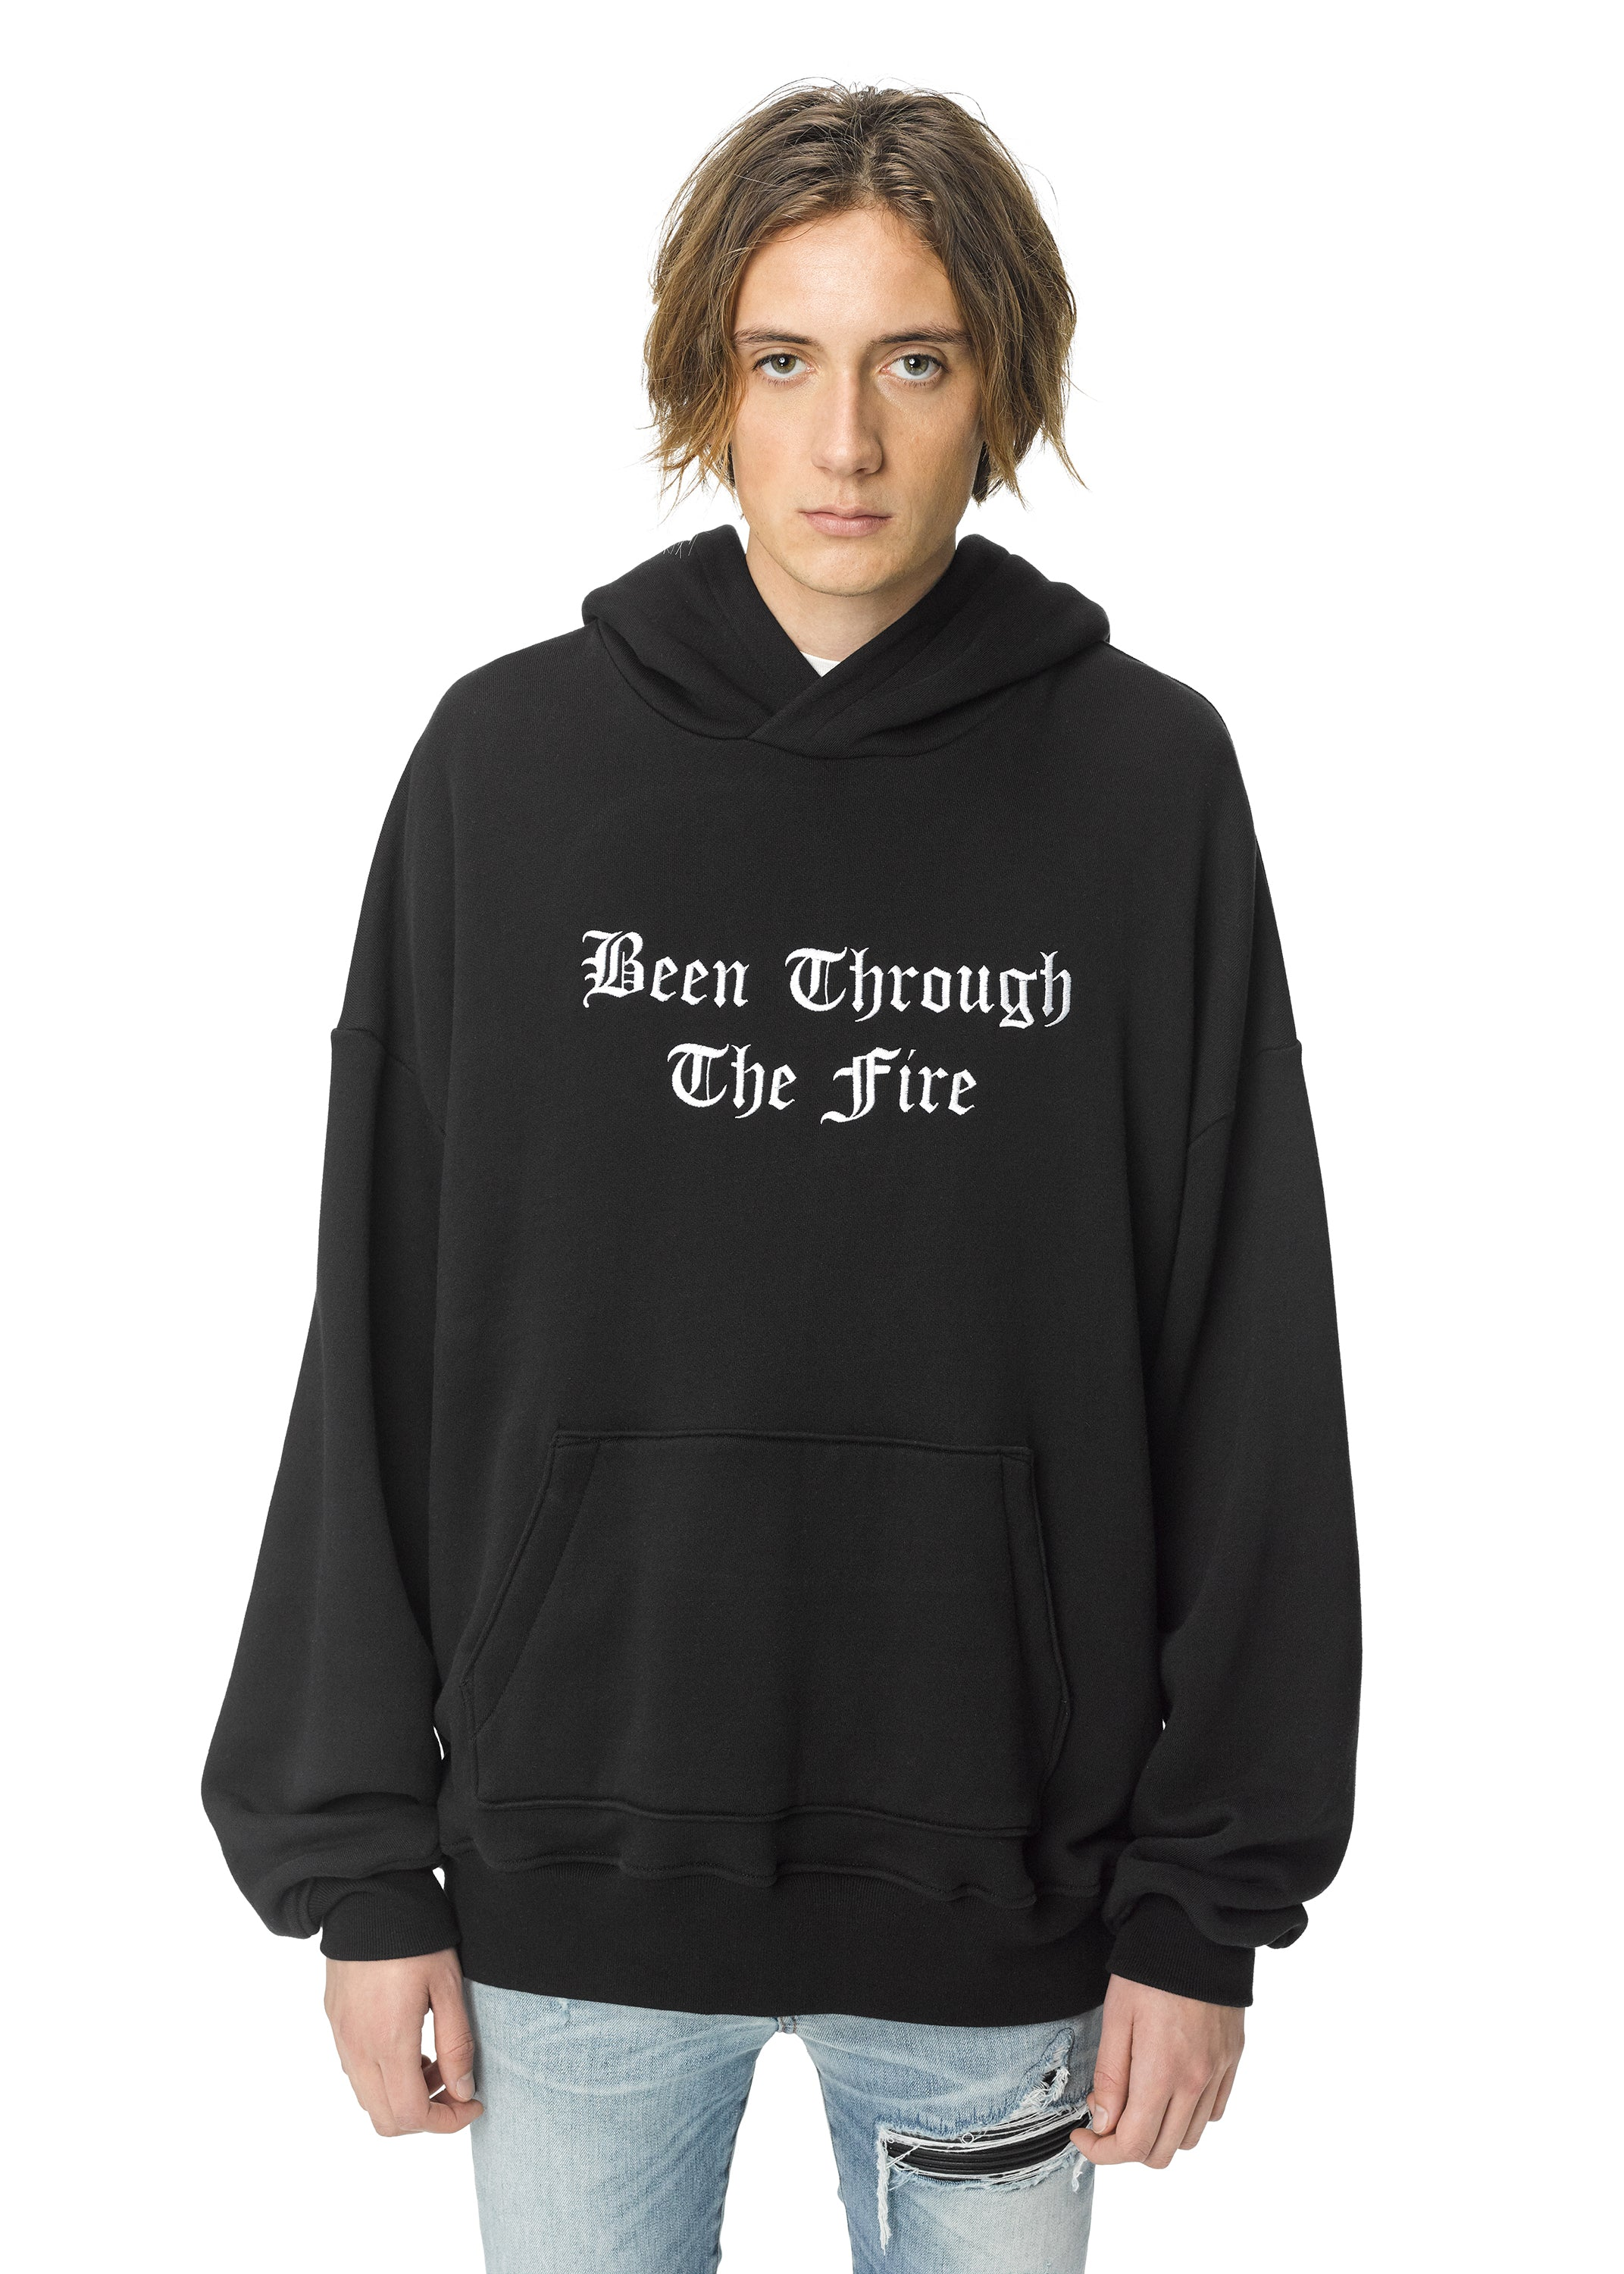 been-through-the-fire-hoodie-black-image-1